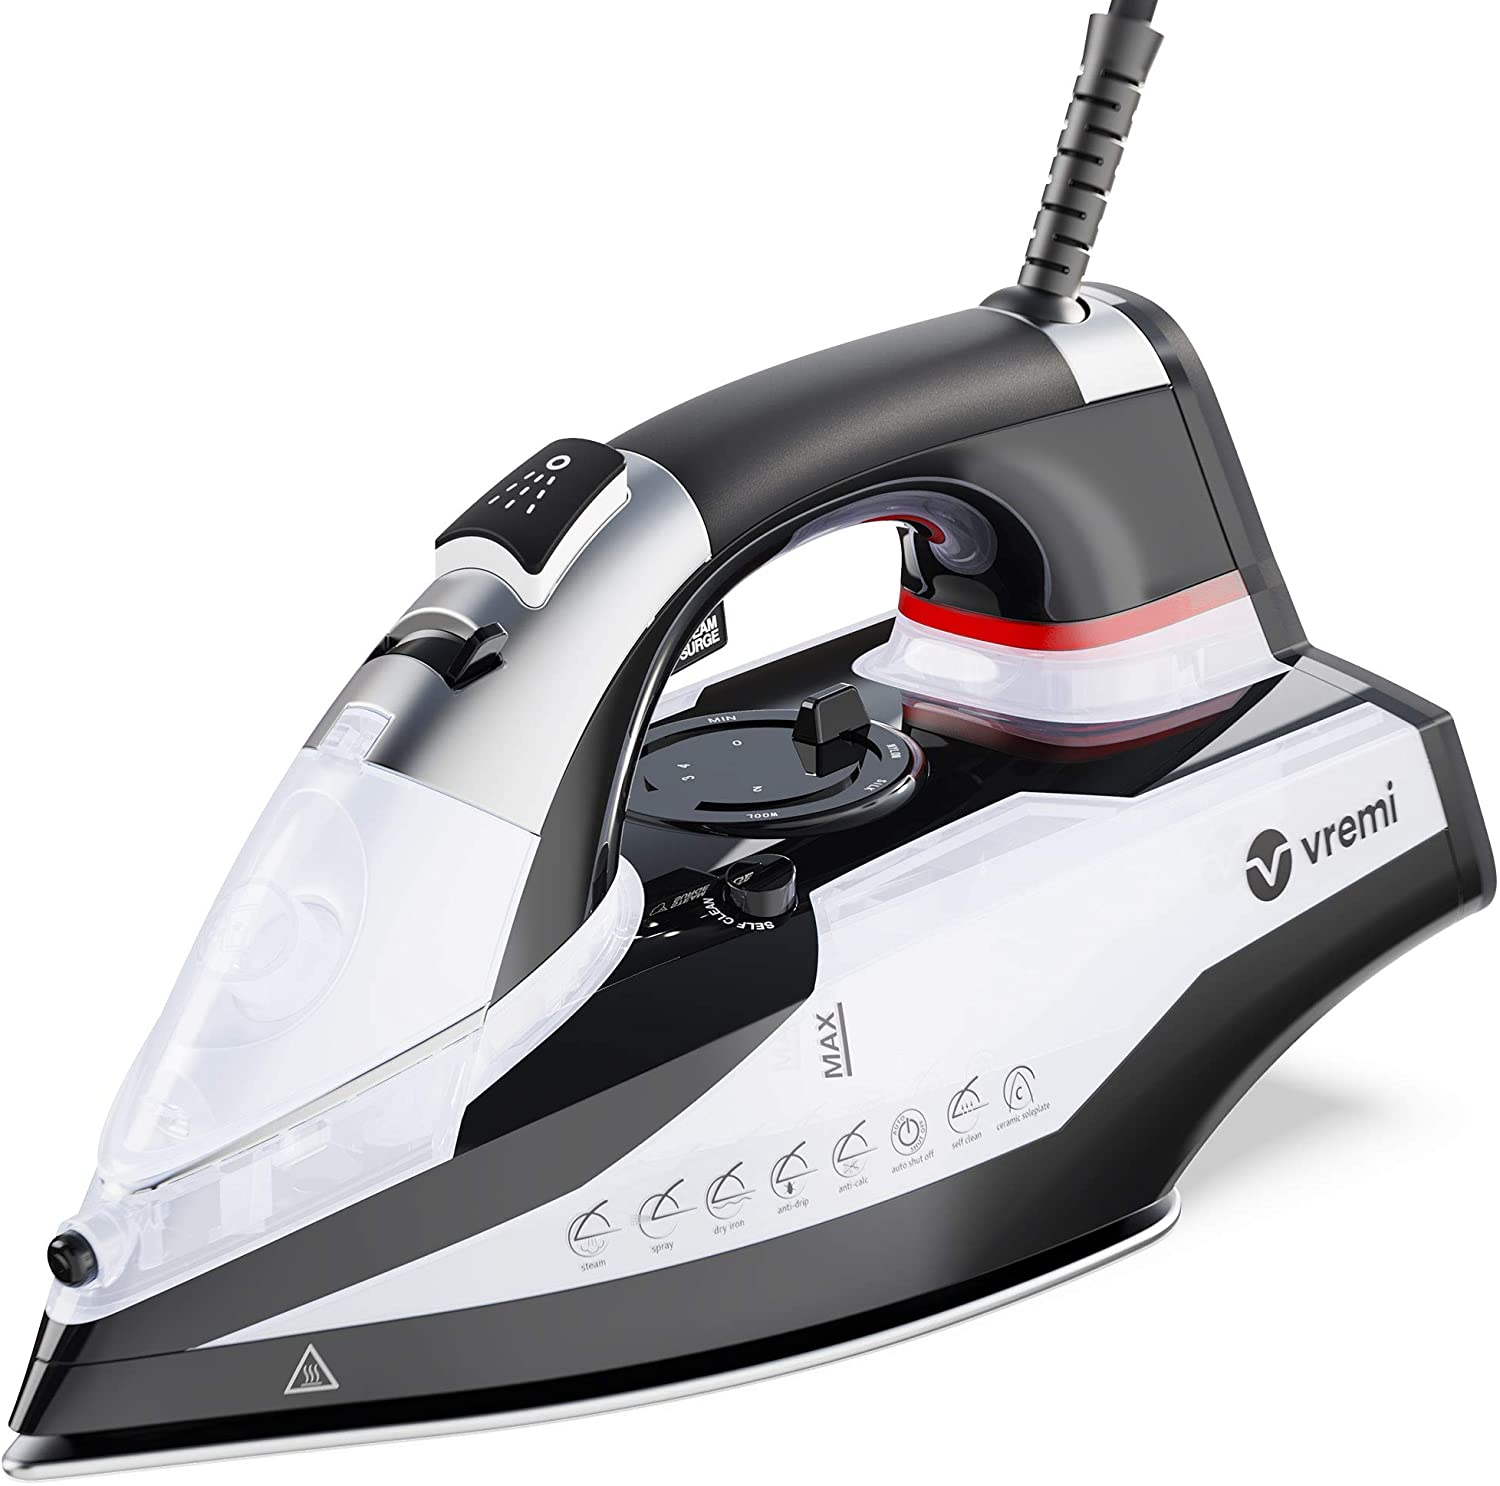 Vremi 1800-Watt Steam Iron